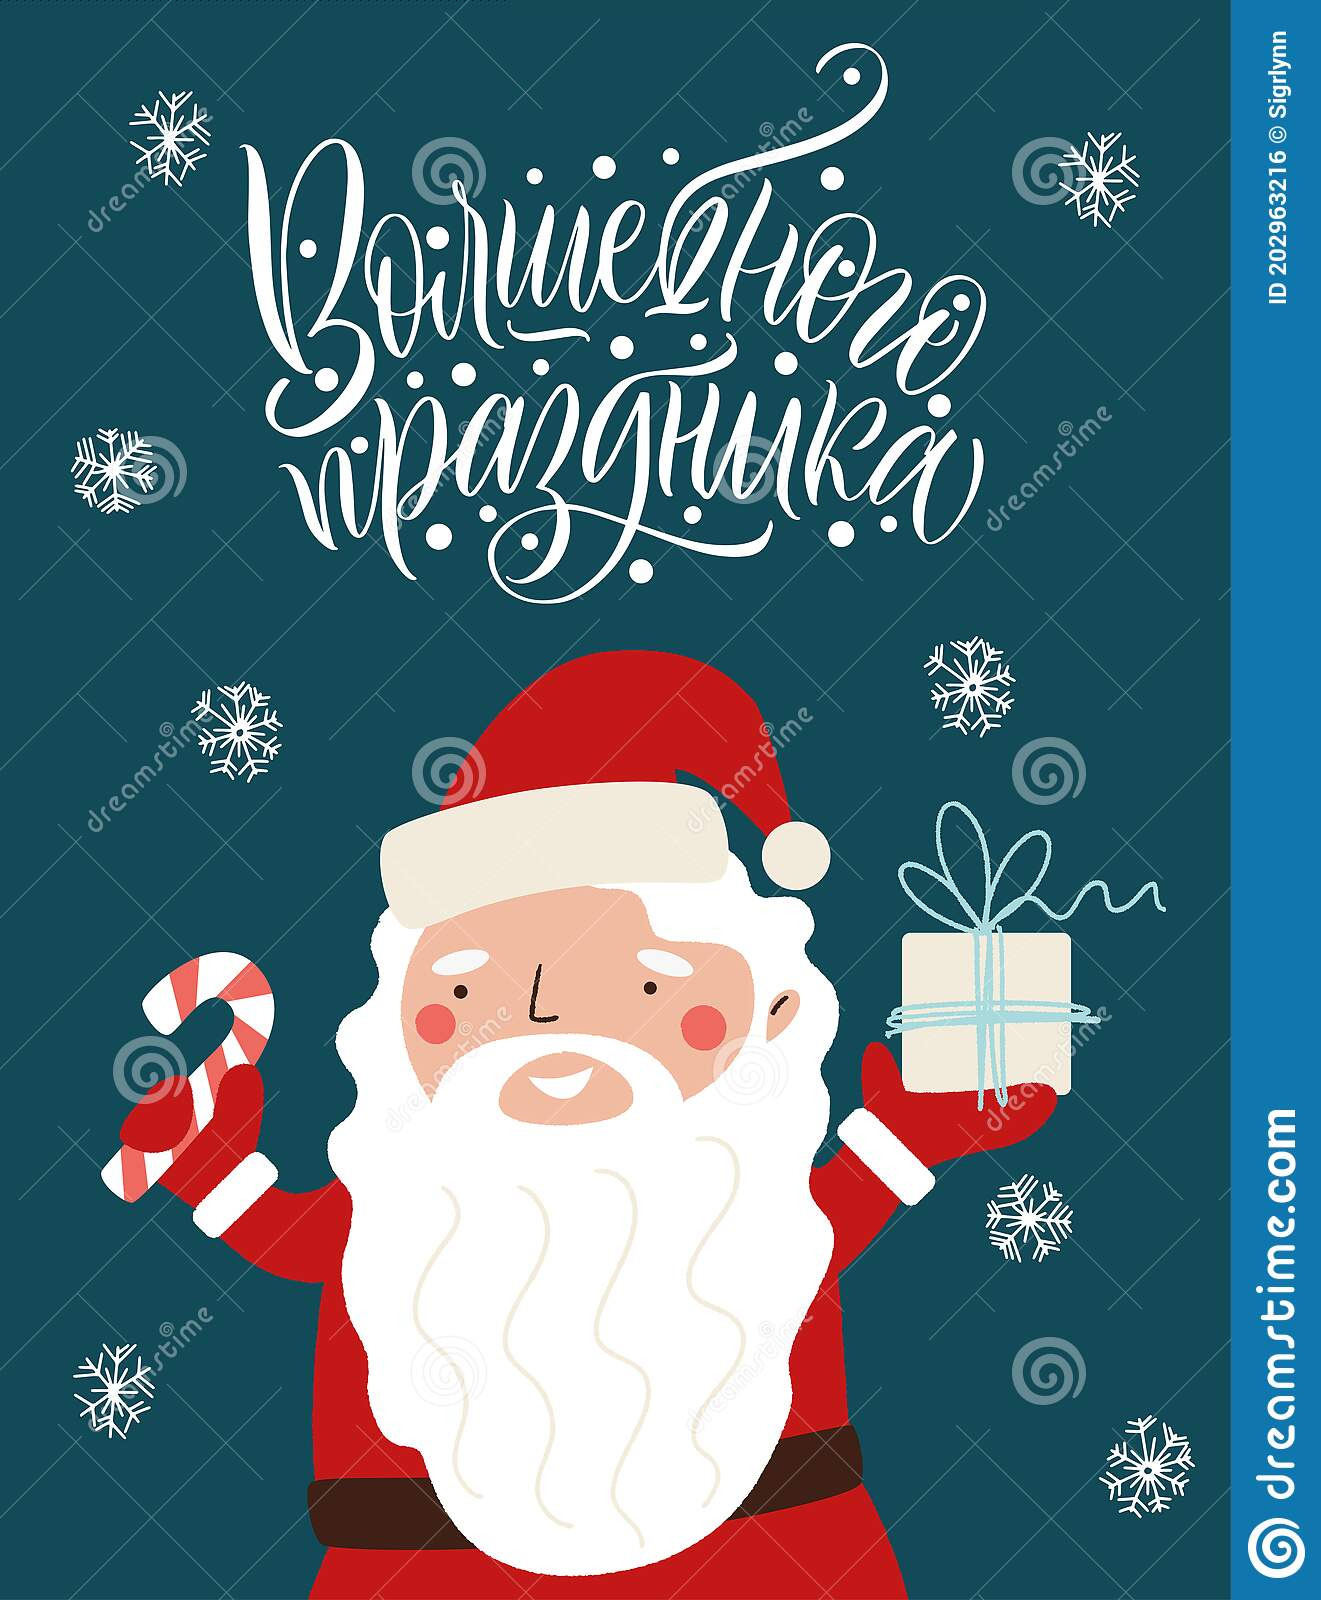 Russian Christmas For 2021 A Magical Holiday An Inscription In Russian Santa Claus With A Gift Happy New Year 2021 Stock Vector Illustration Of December Drawing 202963216